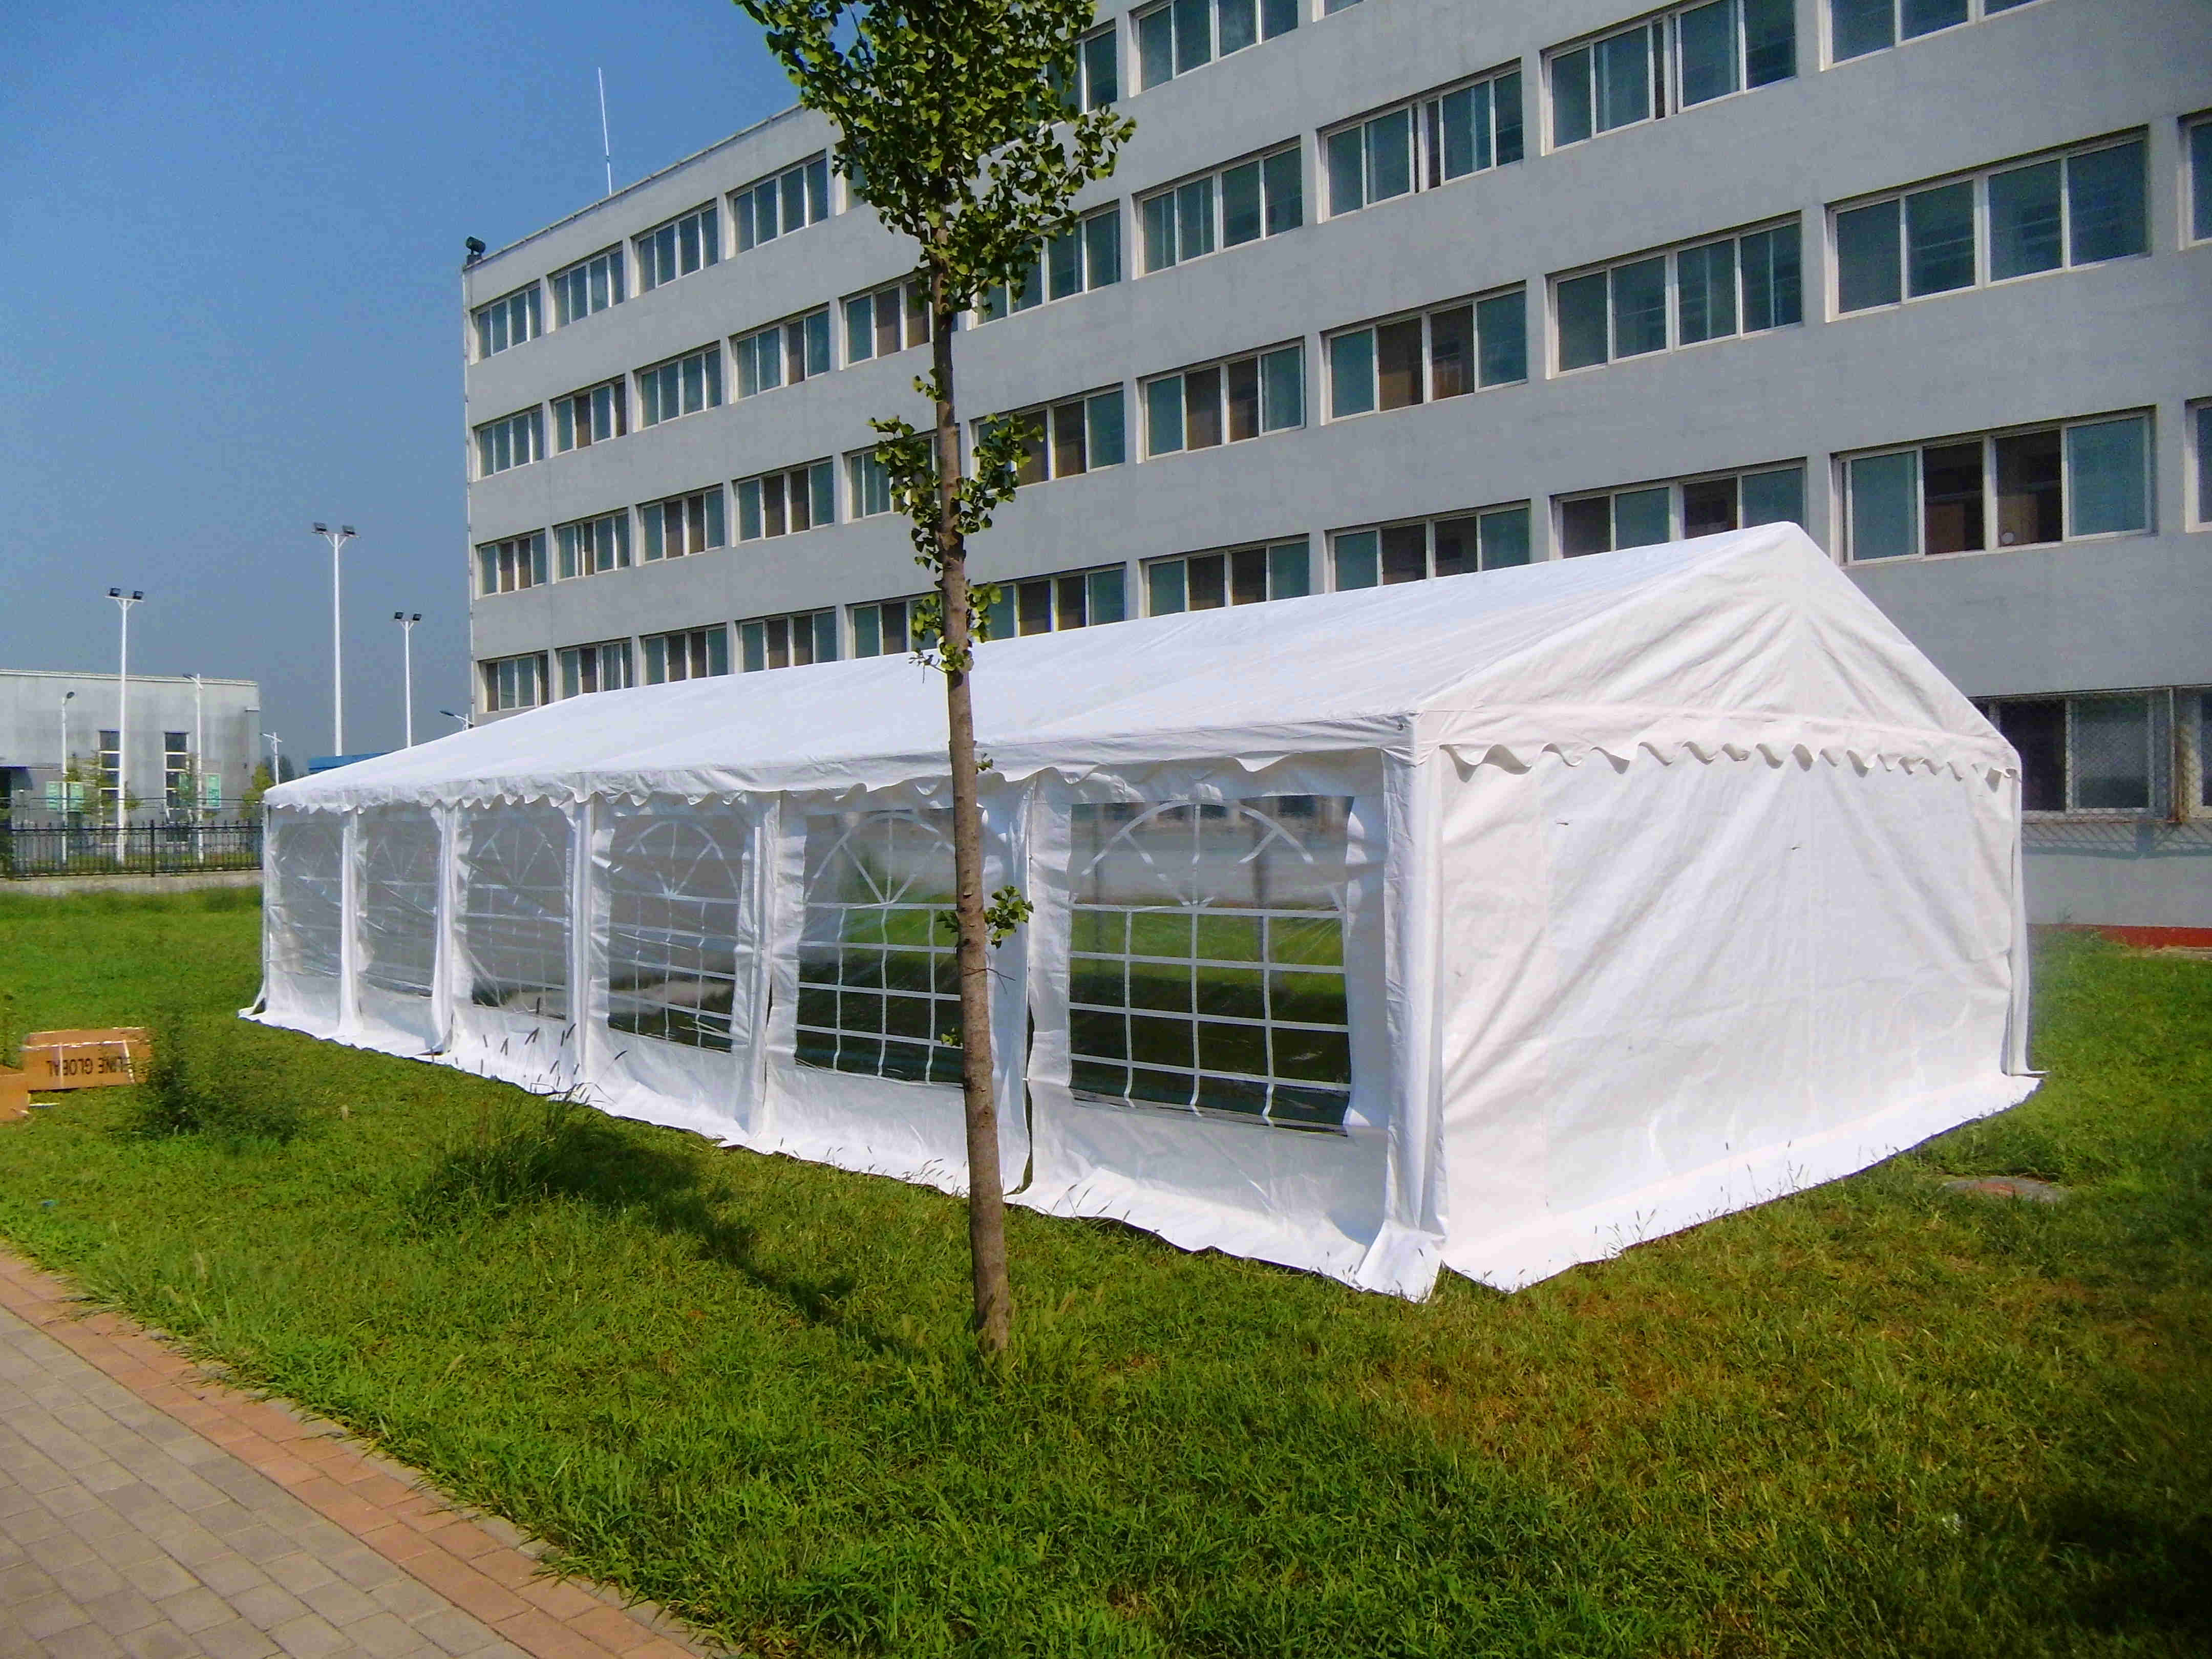 40 x 20 Ft Heavy Duty Commercial Party Canopy Car Shelter Wedding C&ing Tent - Walmart.com : 20 x 40 canopy tent - memphite.com